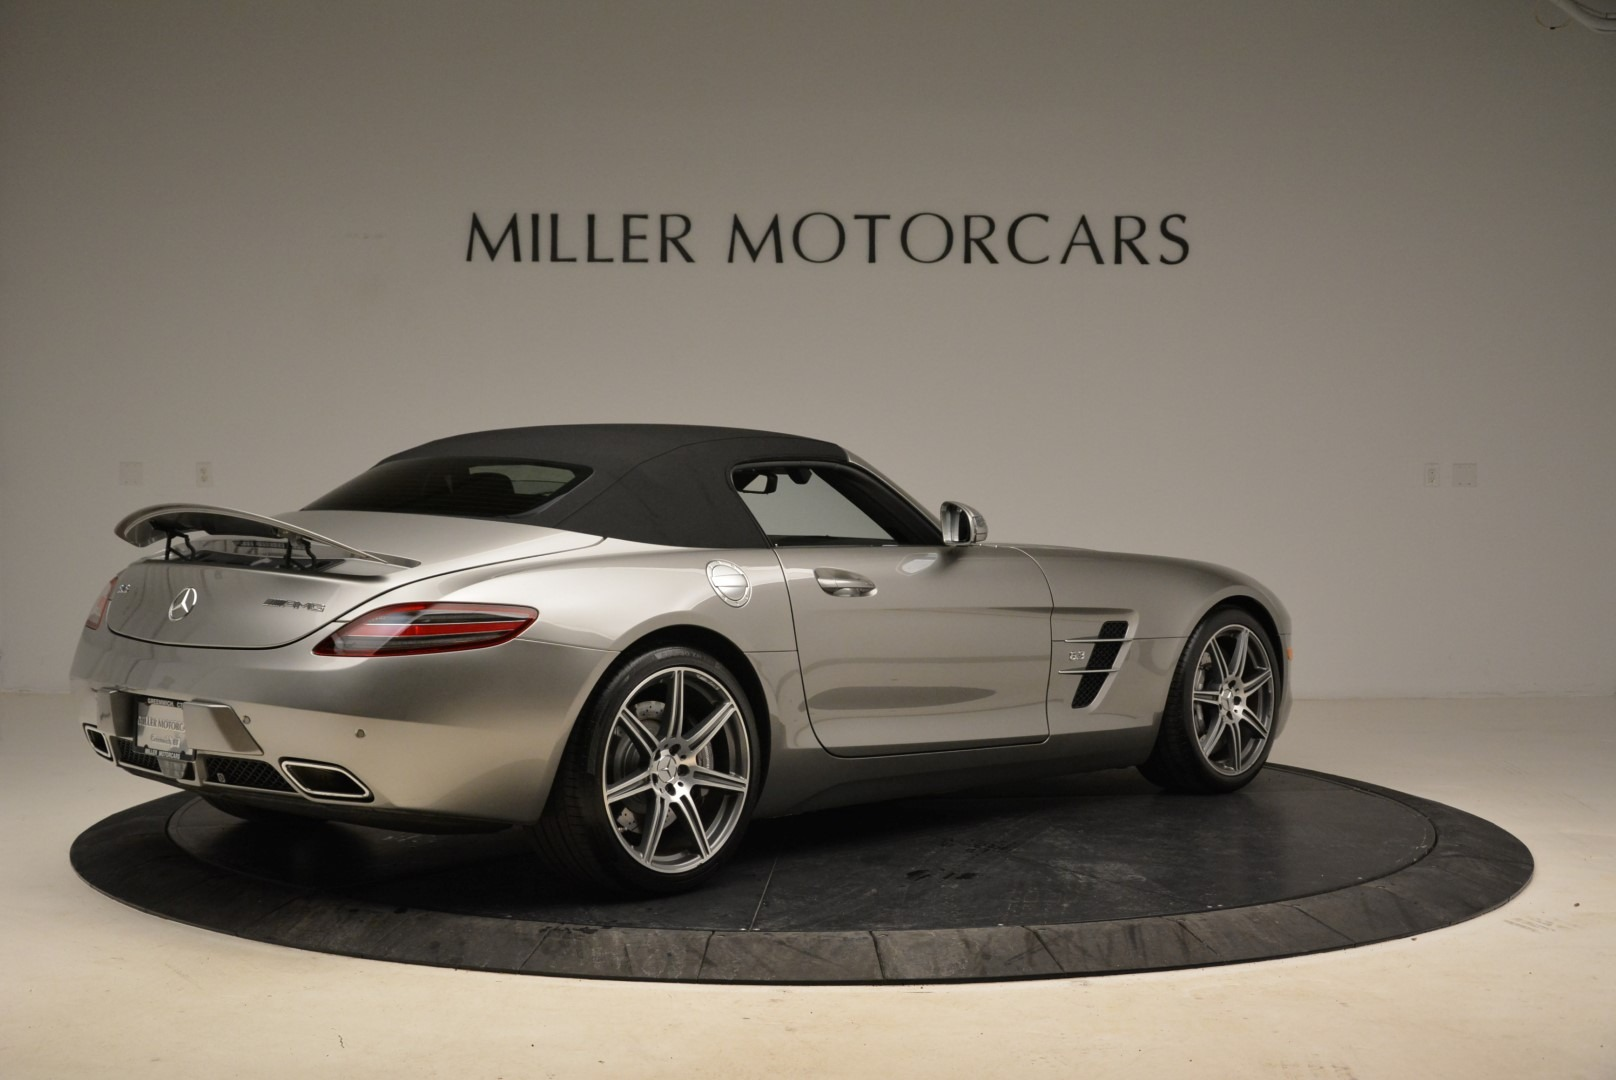 Used 2012 Mercedes-Benz SLS AMG  For Sale In Greenwich, CT. Alfa Romeo of Greenwich, 7330 2068_p17